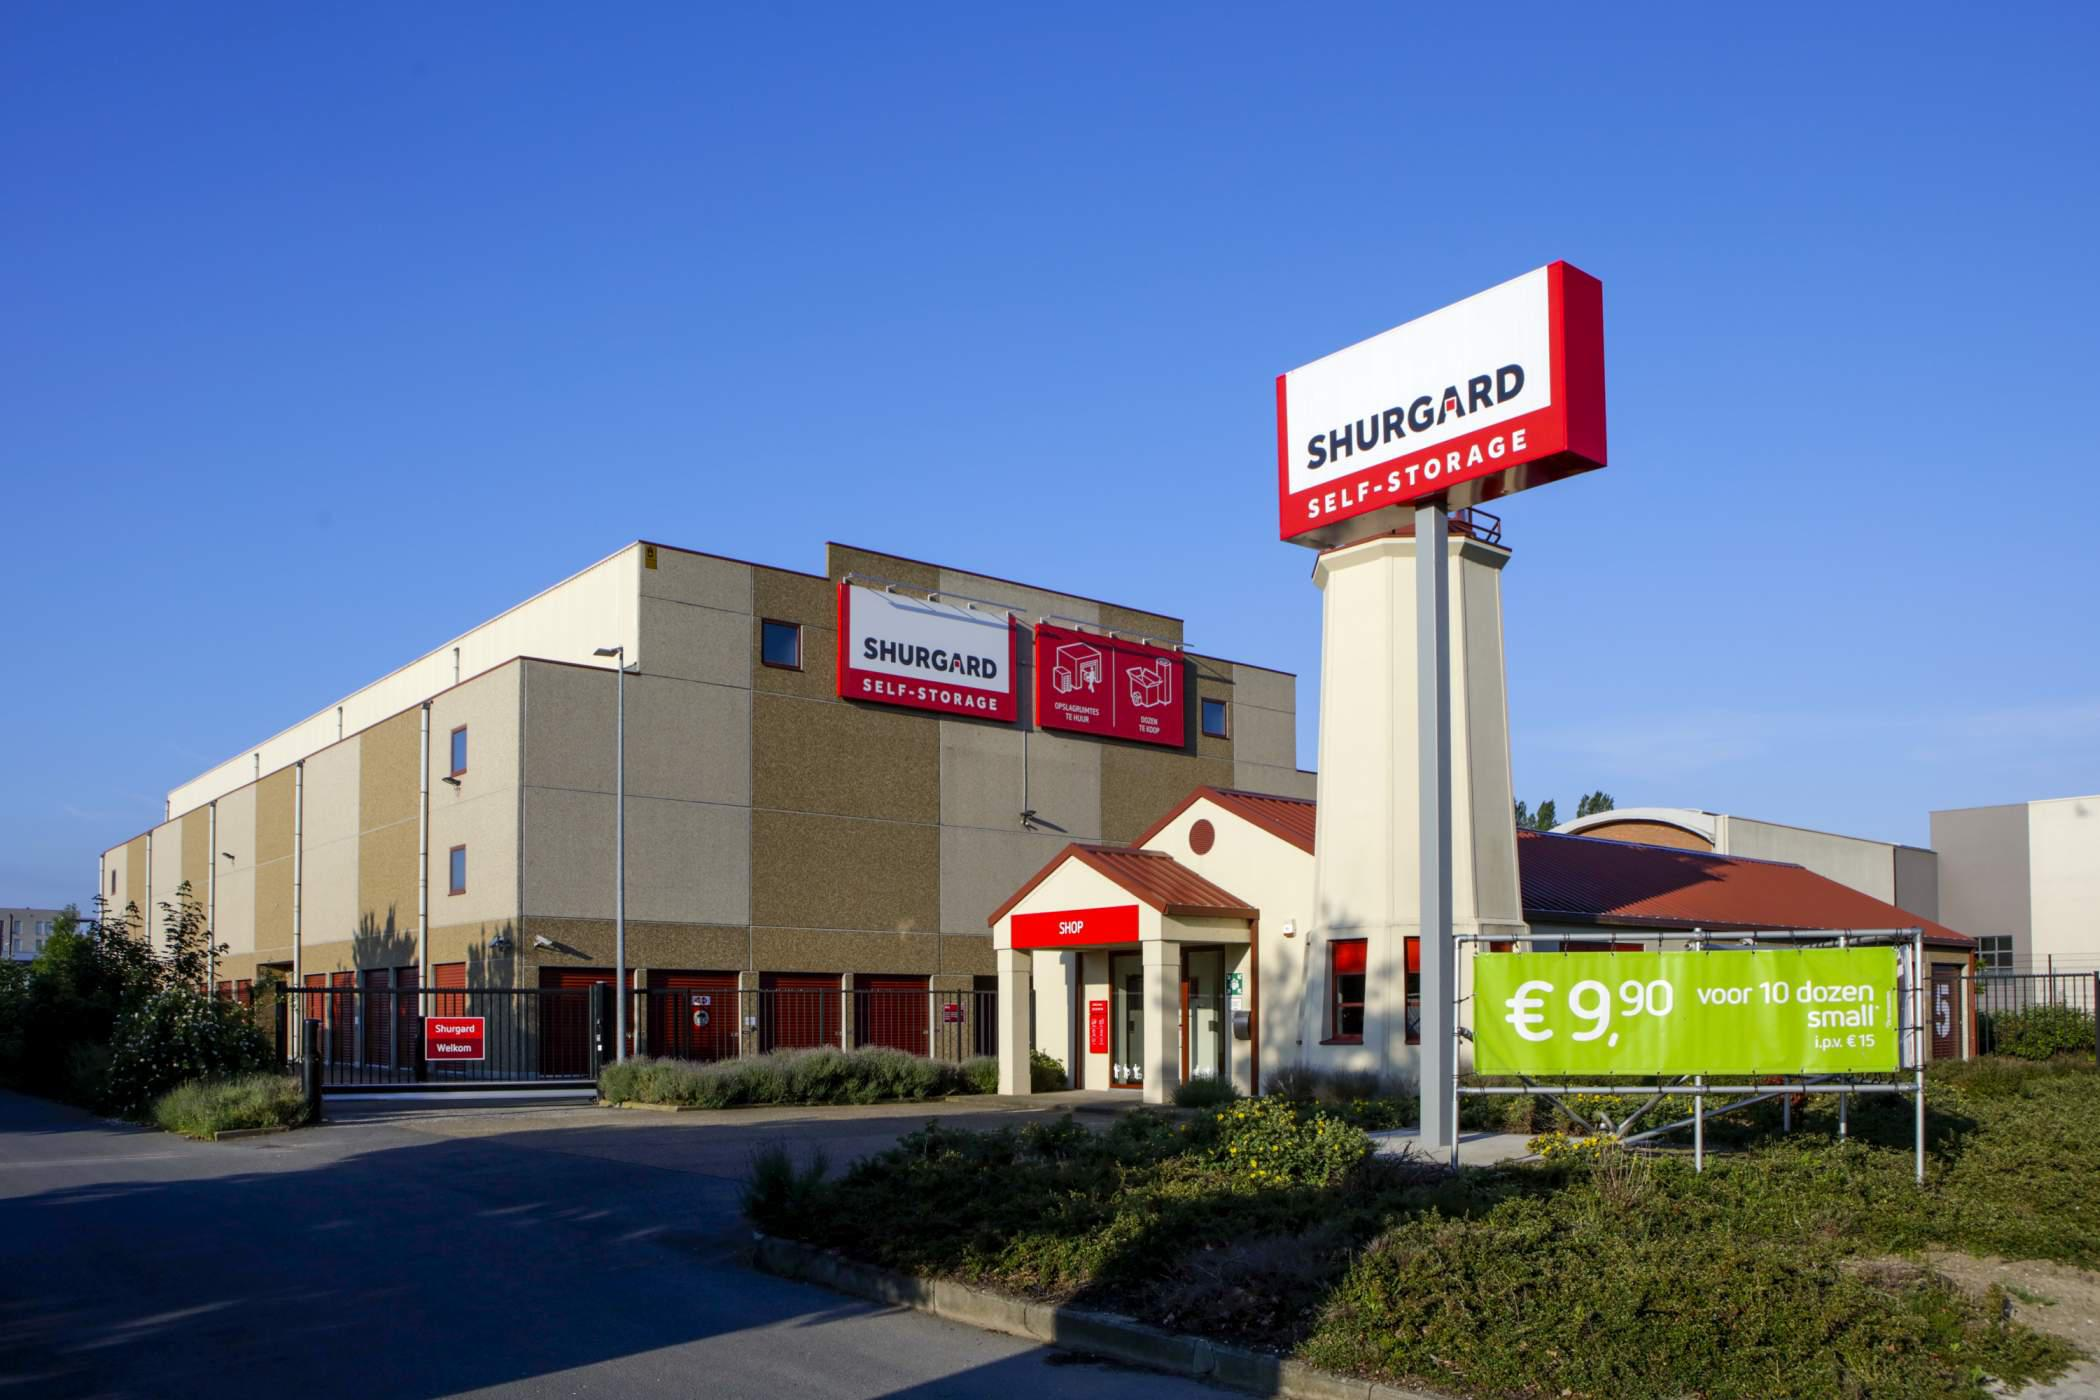 Shurgard Self-Storage Antwerpen Linkeroever